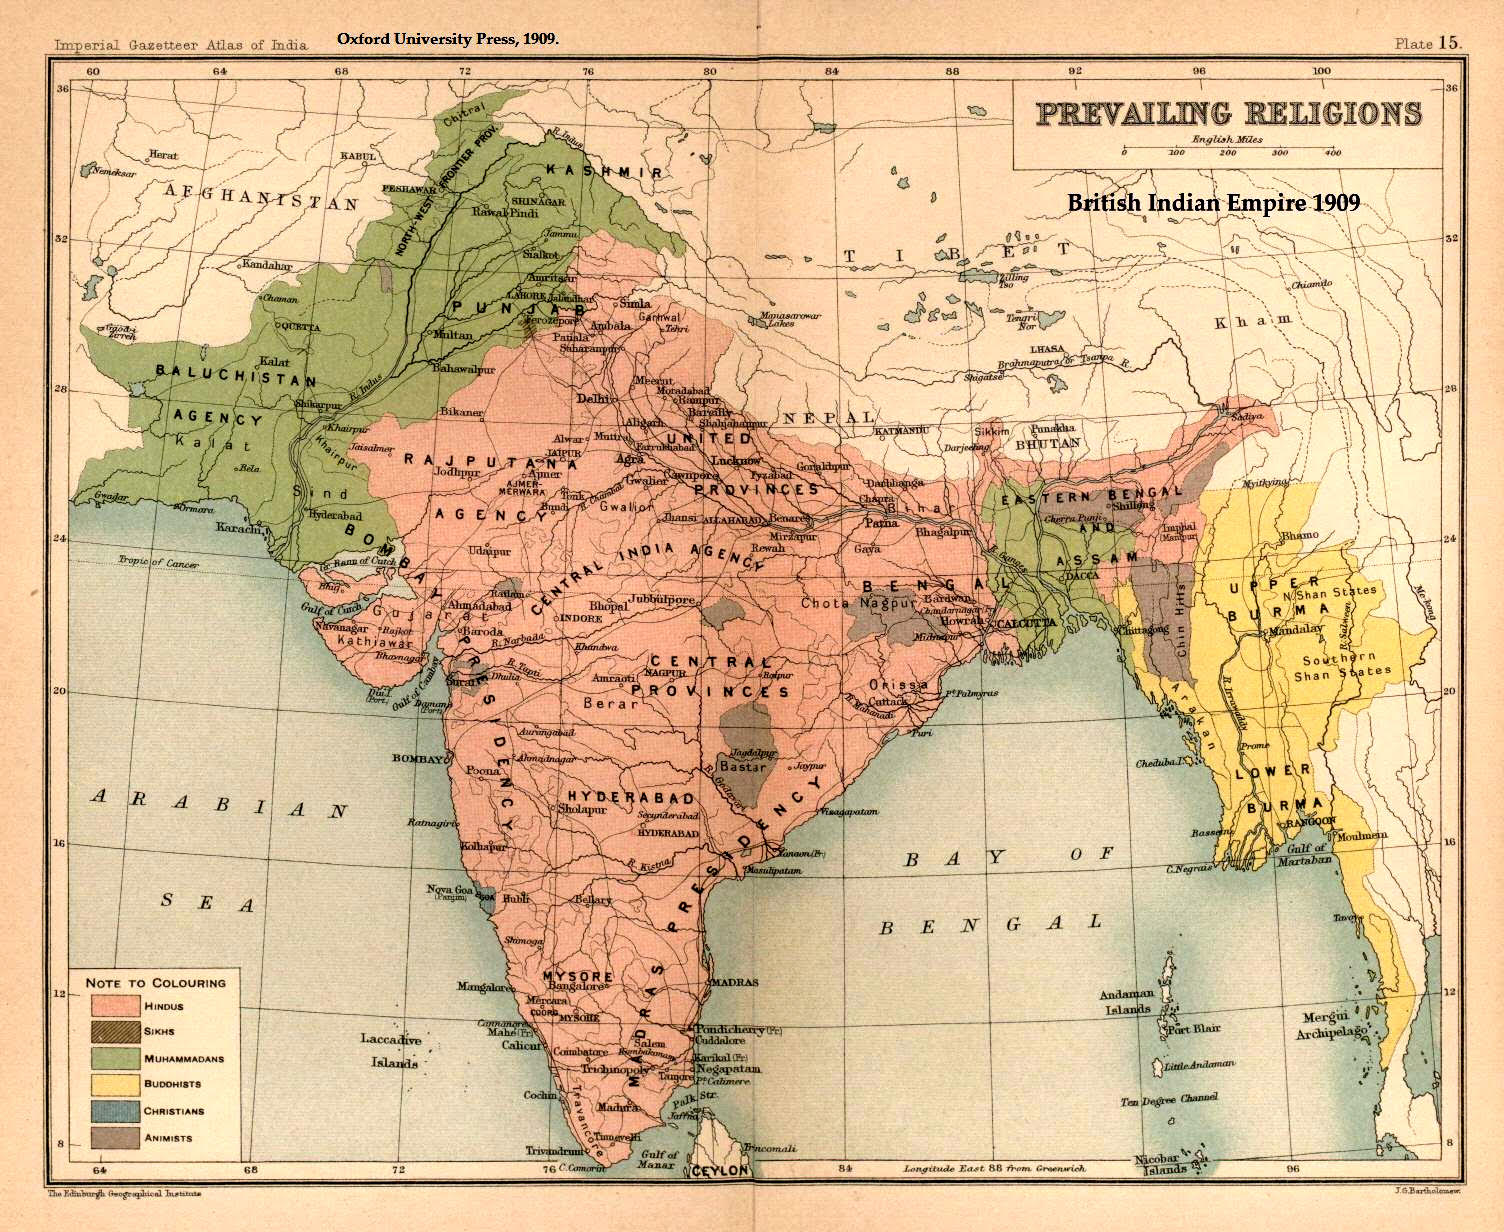 Religion Map Of South Asia.Religion And Nationhood In South Asia Al Talib